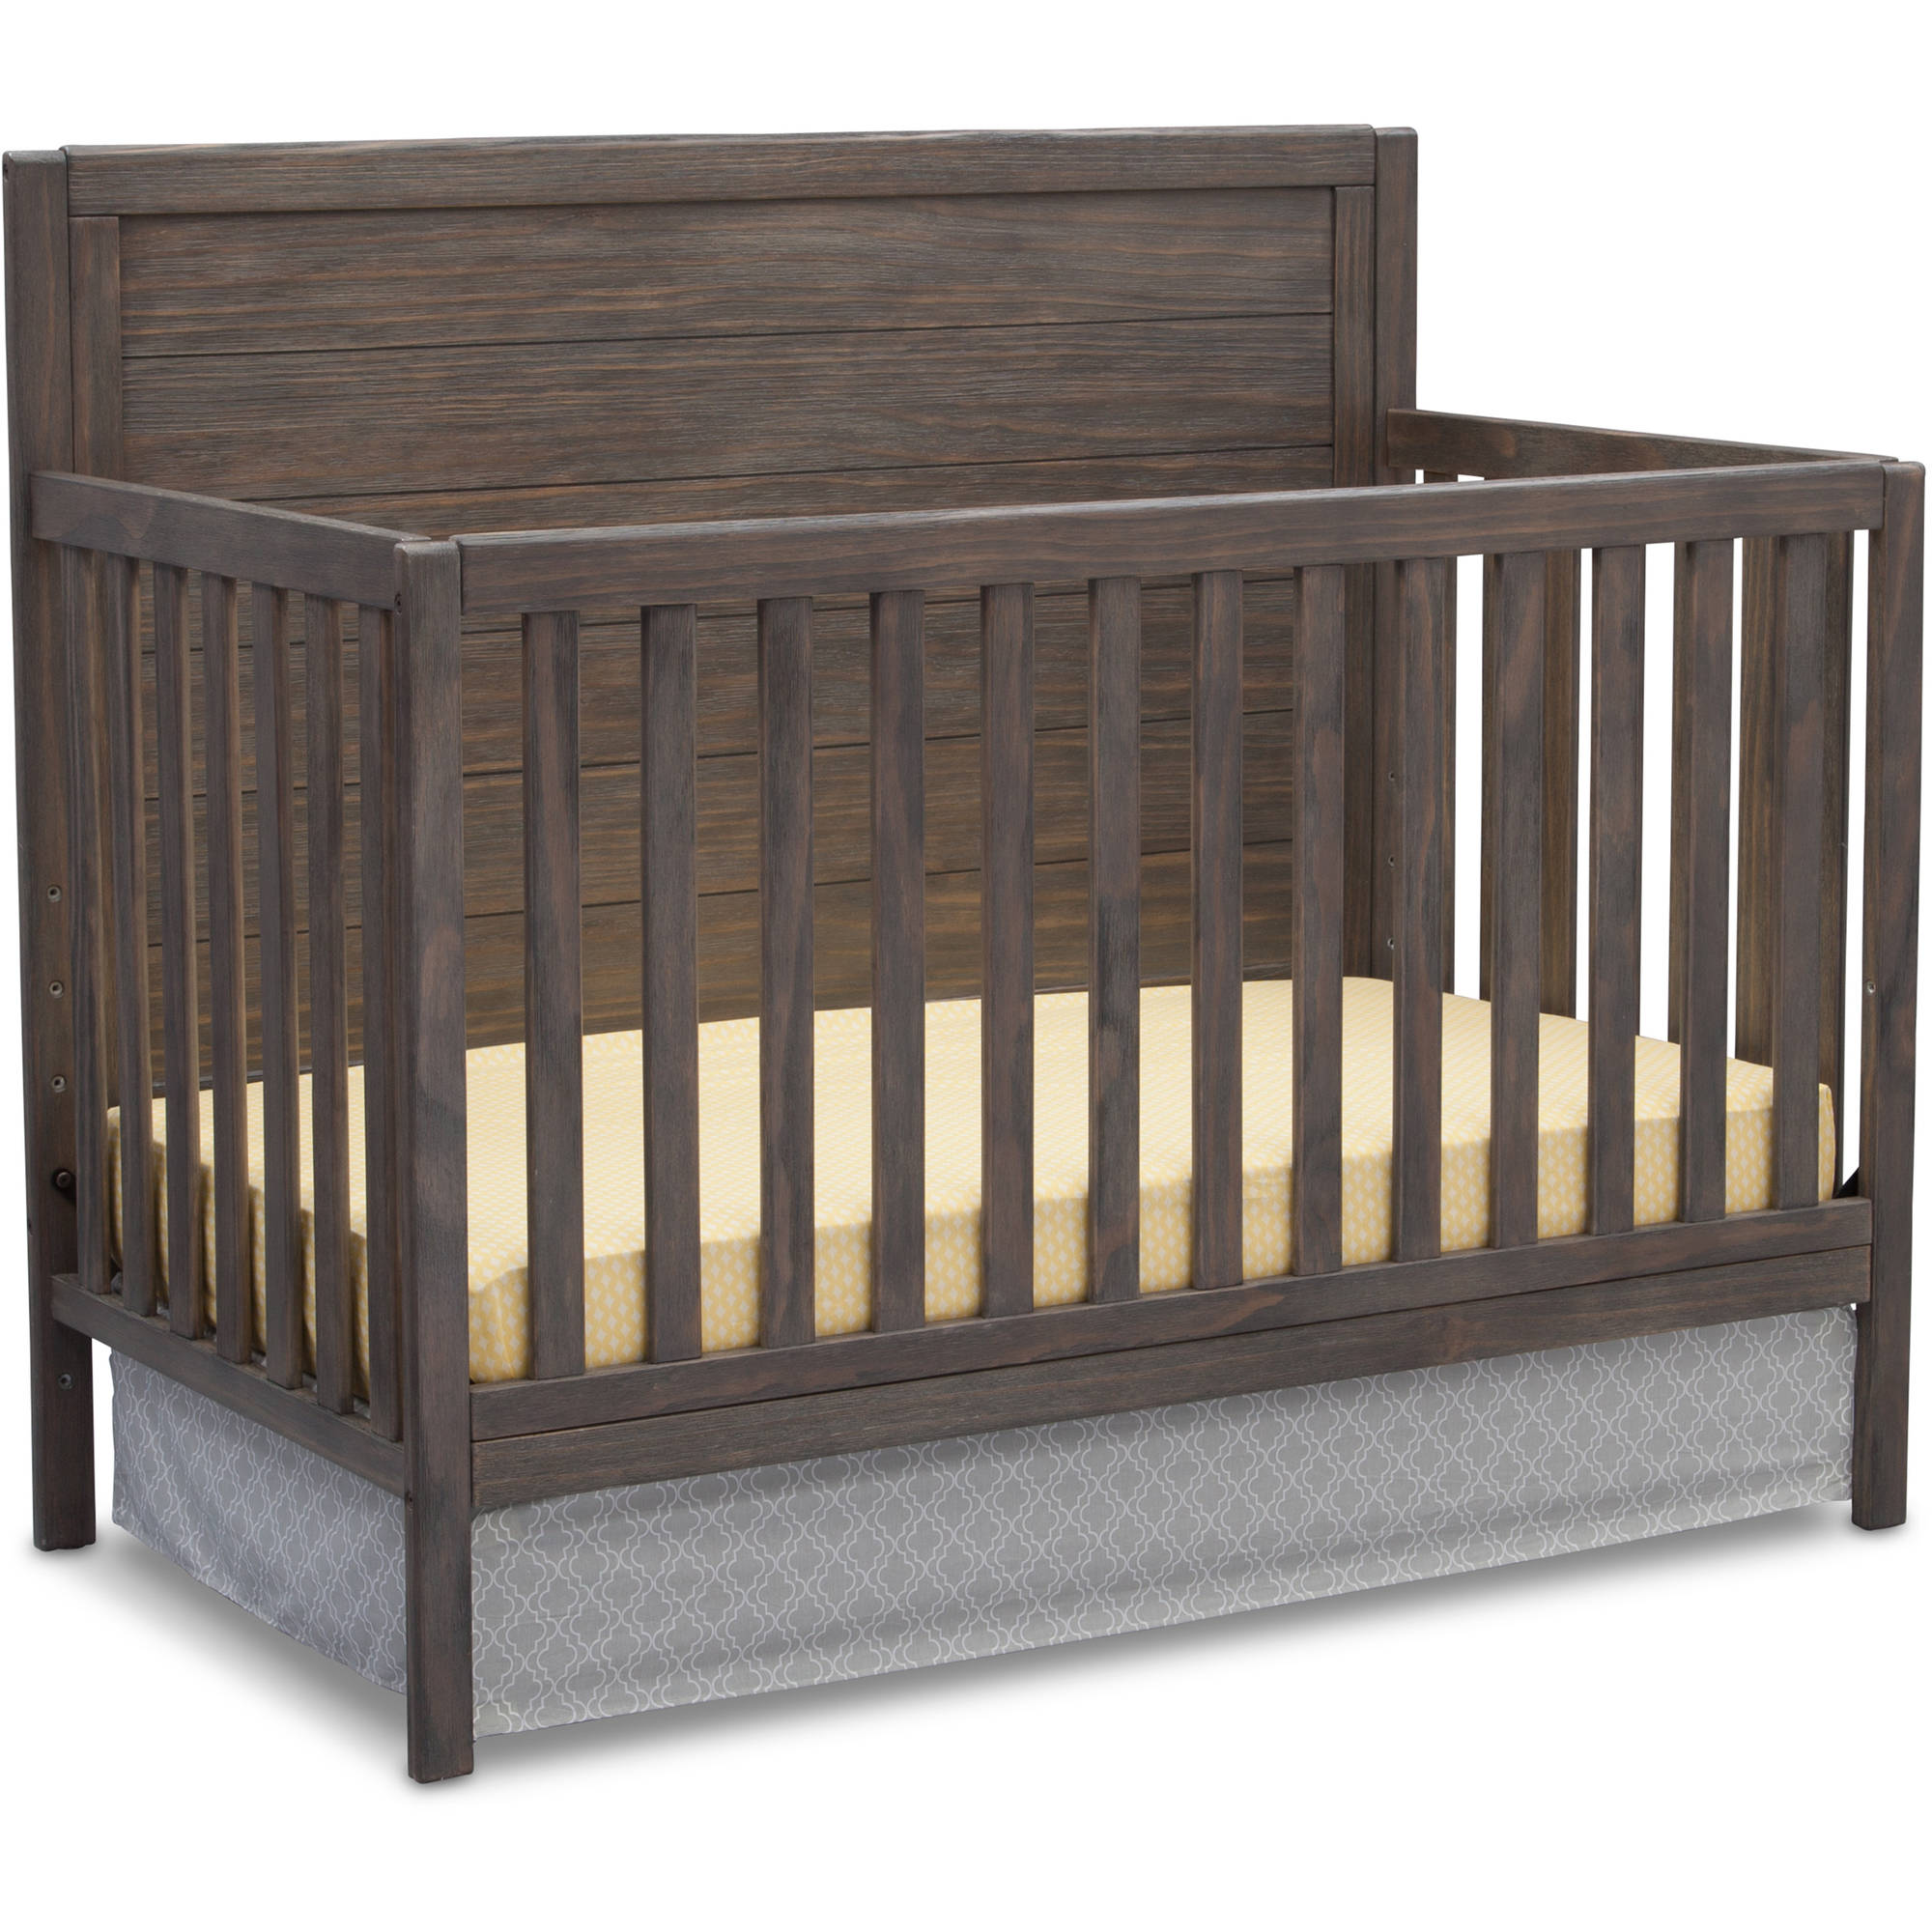 lolly cribs crib bed project convertible kit toddler nursery products in with conversion